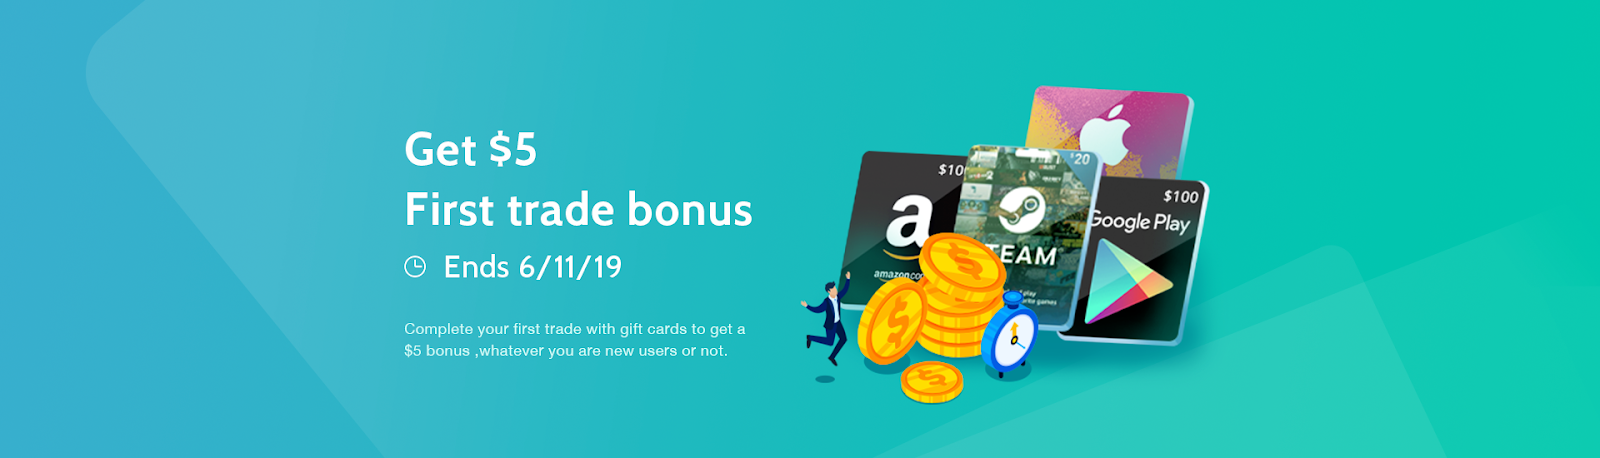 How To Buy Bitcoin With Amazon Gift Cards